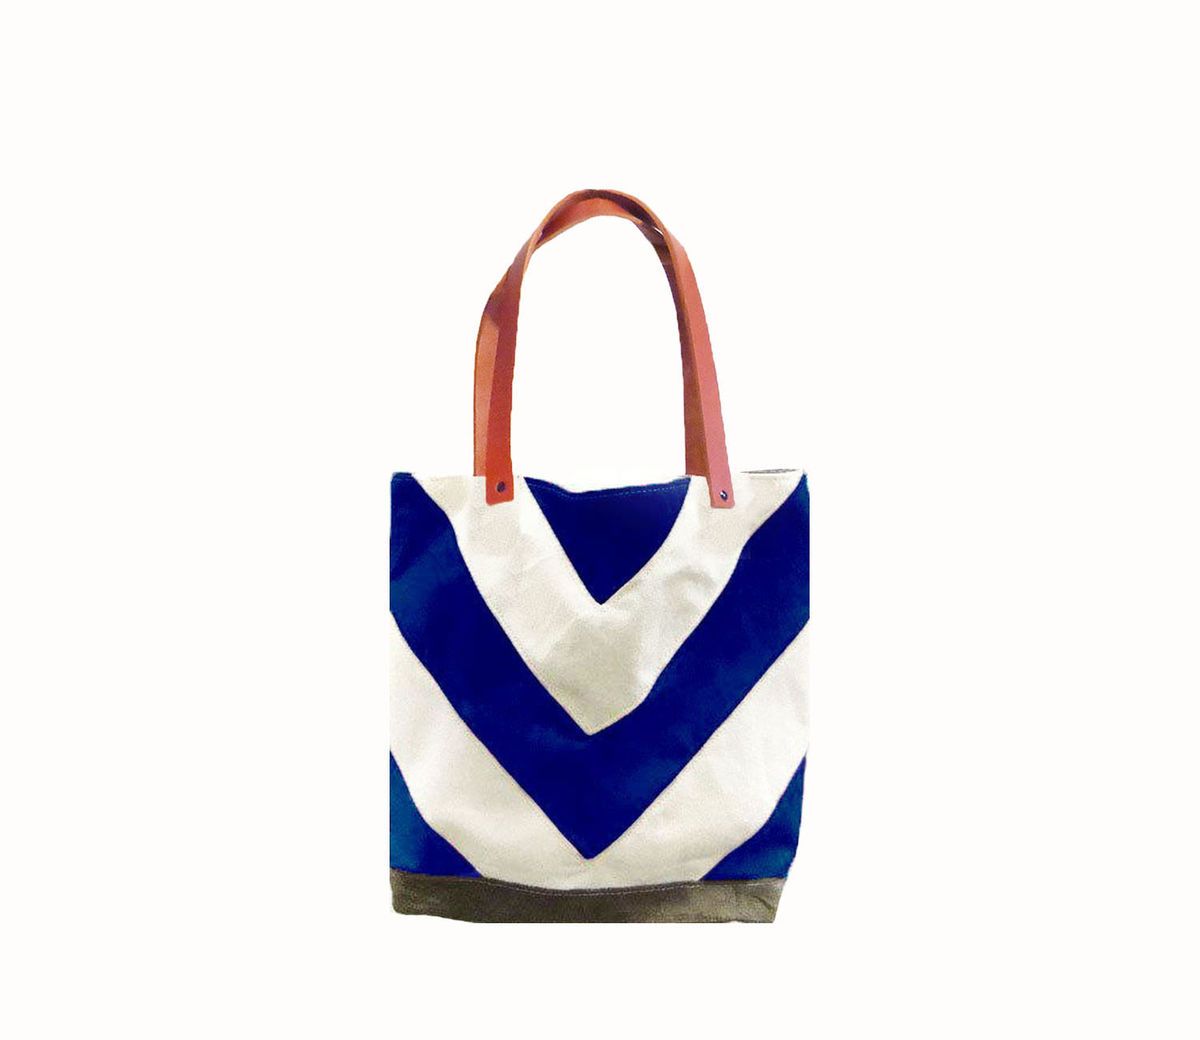 Chevron Tote City Market w/ Leather Straps in Blue - product images  of